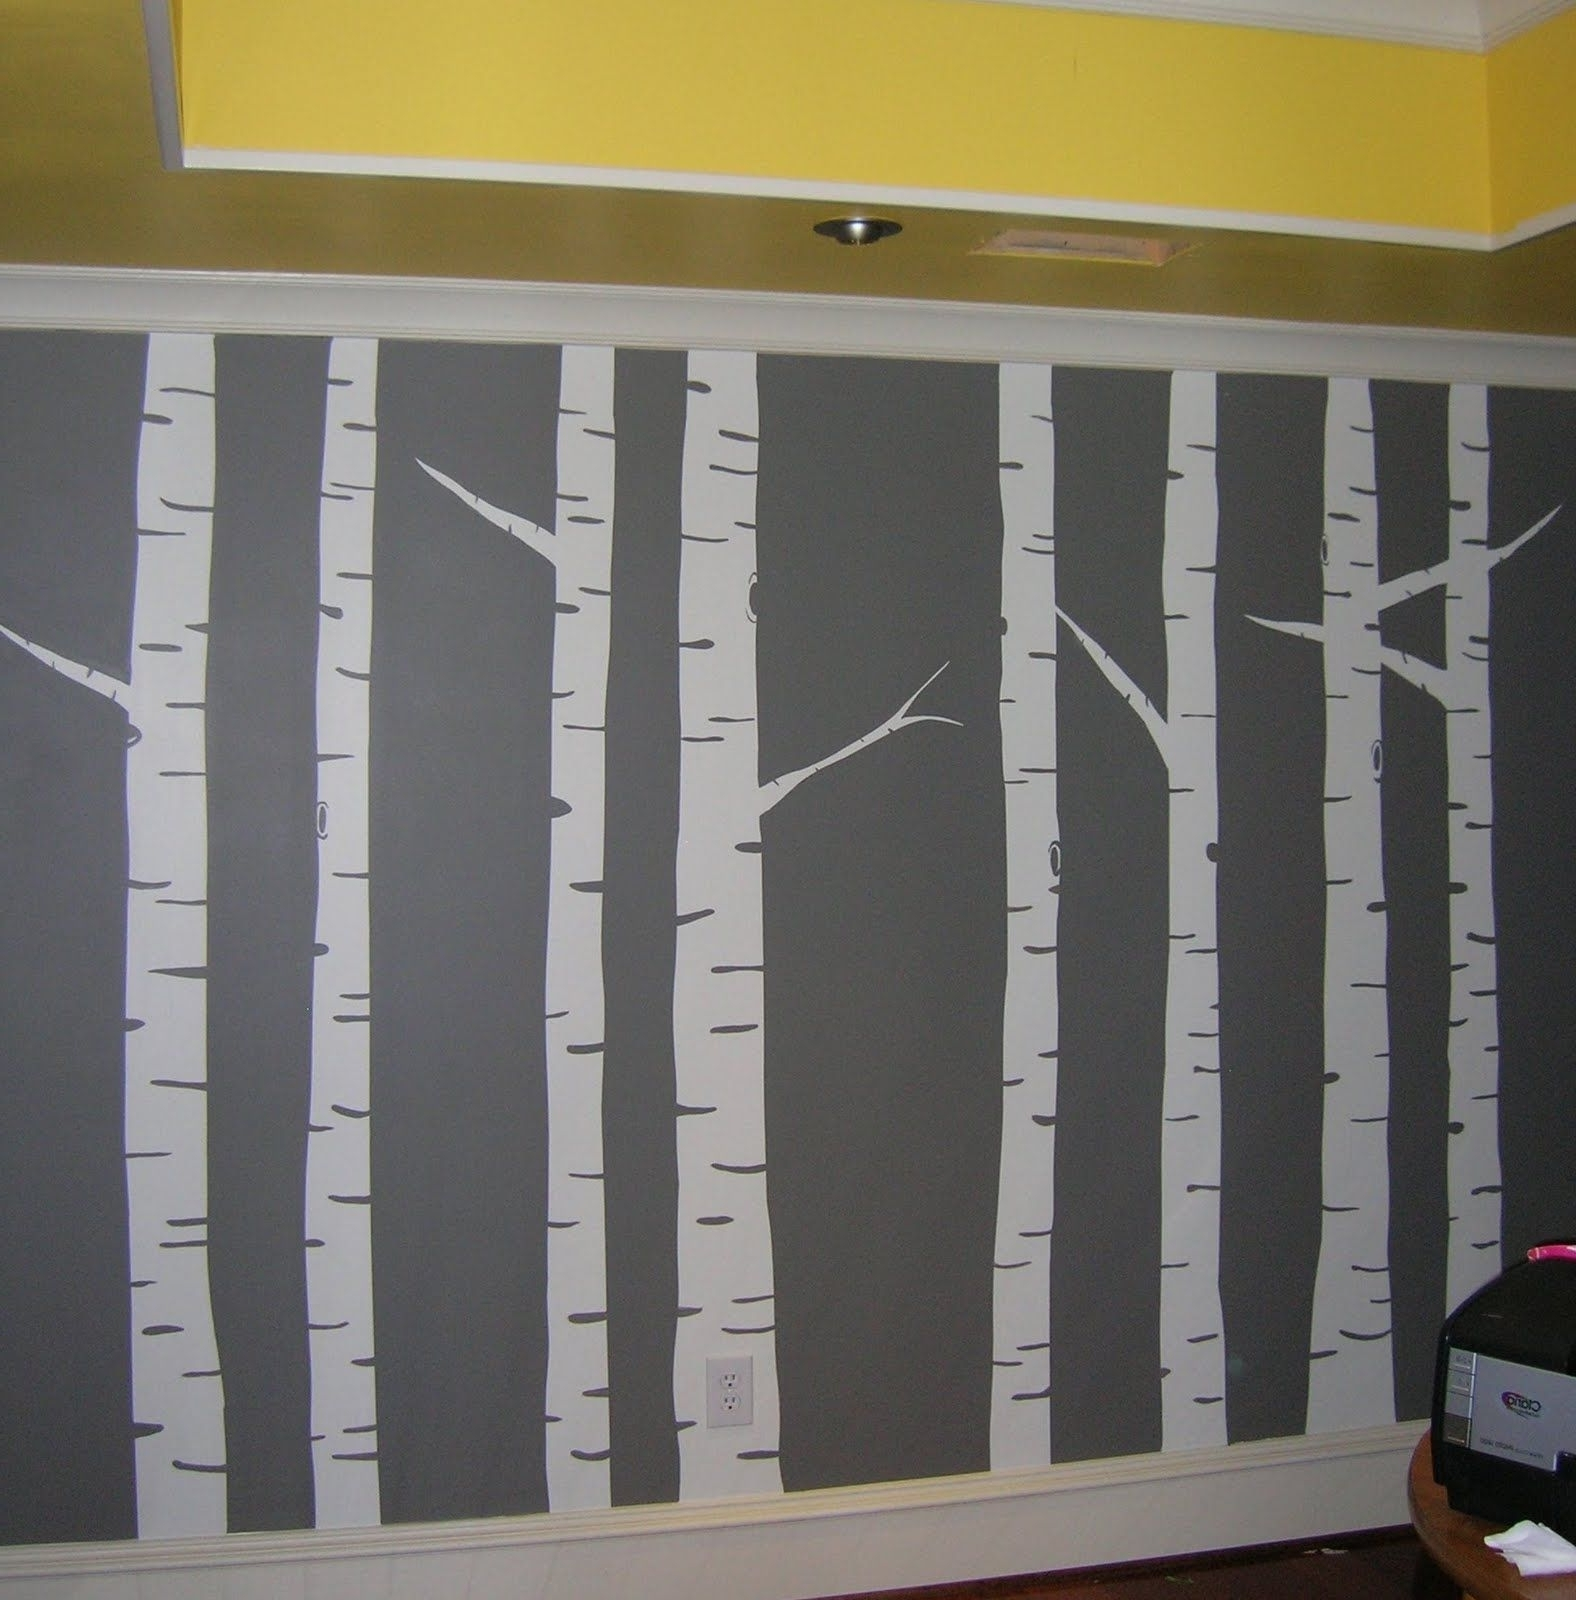 Diy Wall Painted Birch Tree Wall Art Mural Gray Inside Birch Tree Wall Art (Gallery 18 of 20)